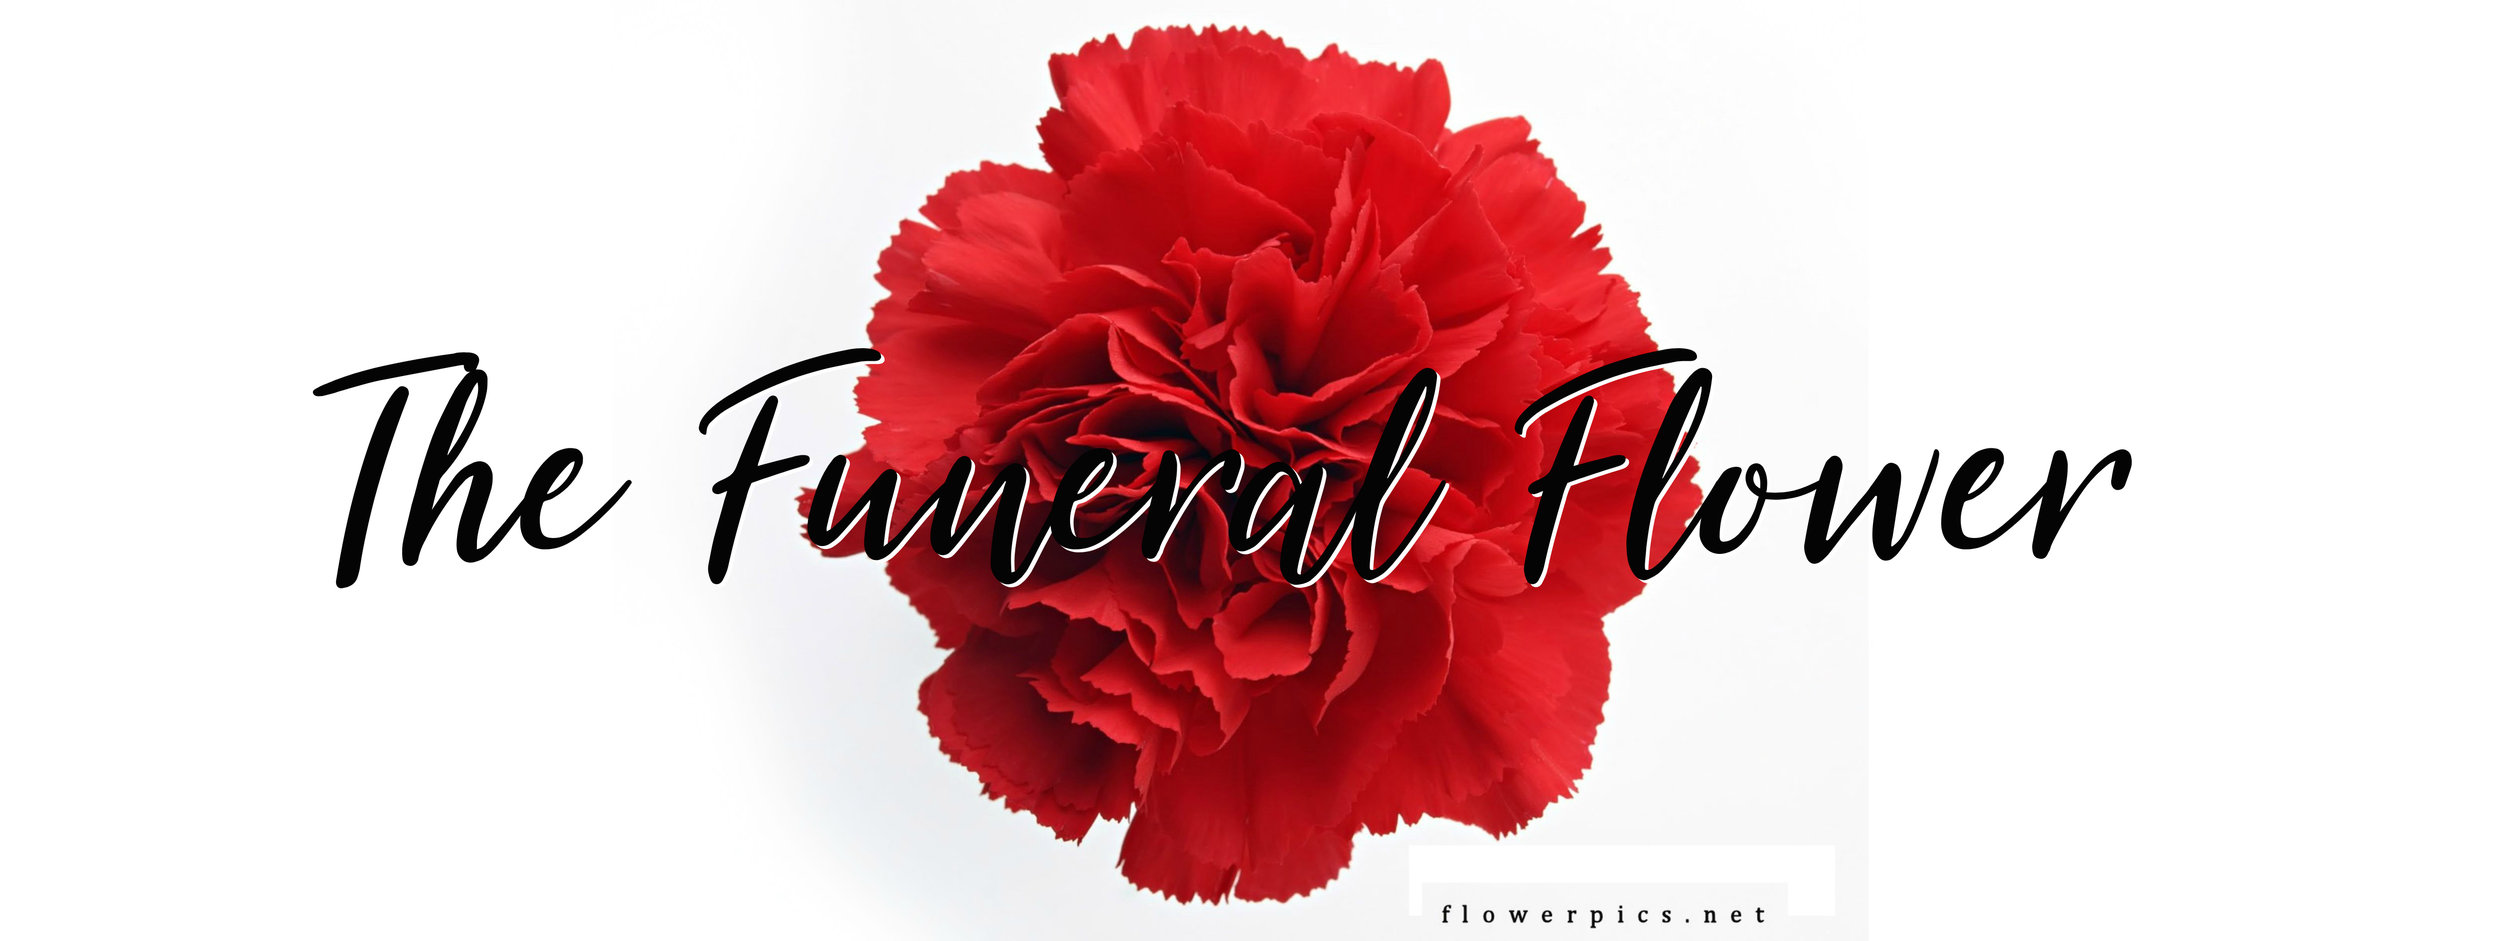 michelle_jester PAGE The Funeral Flower221qw.jpg